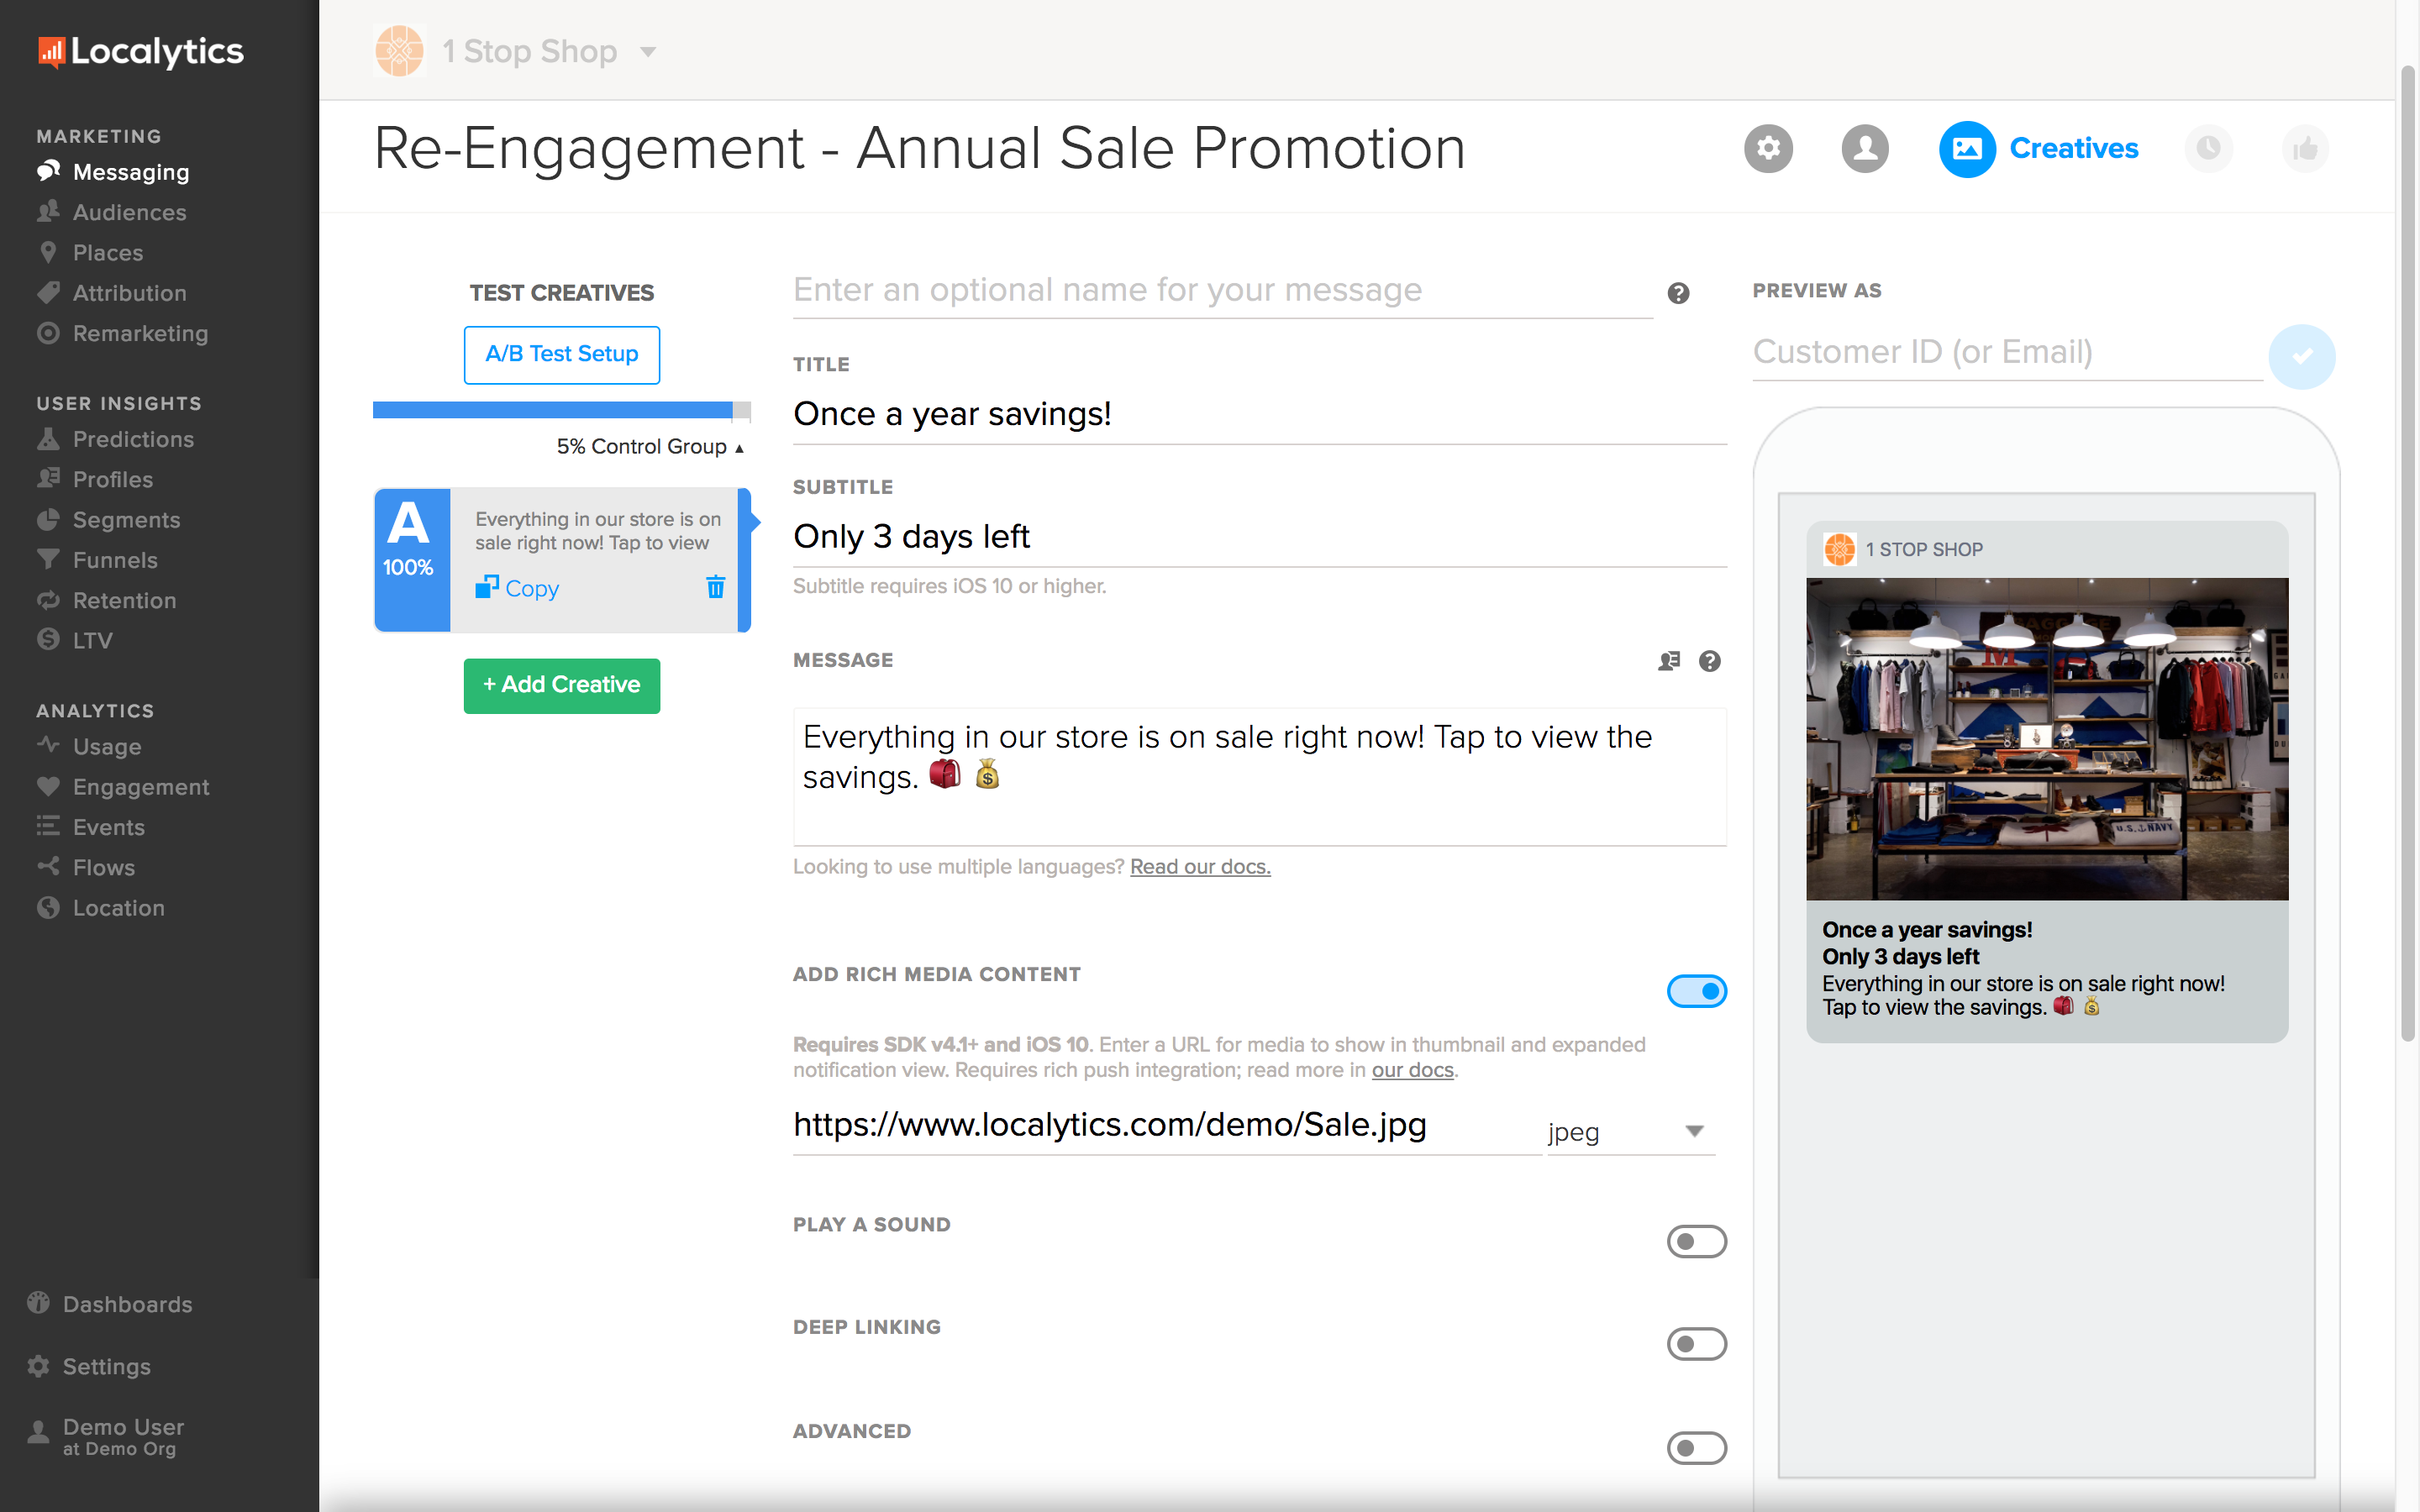 Send targeted push notifications, in-app messages, and Facebook retargeting ads.